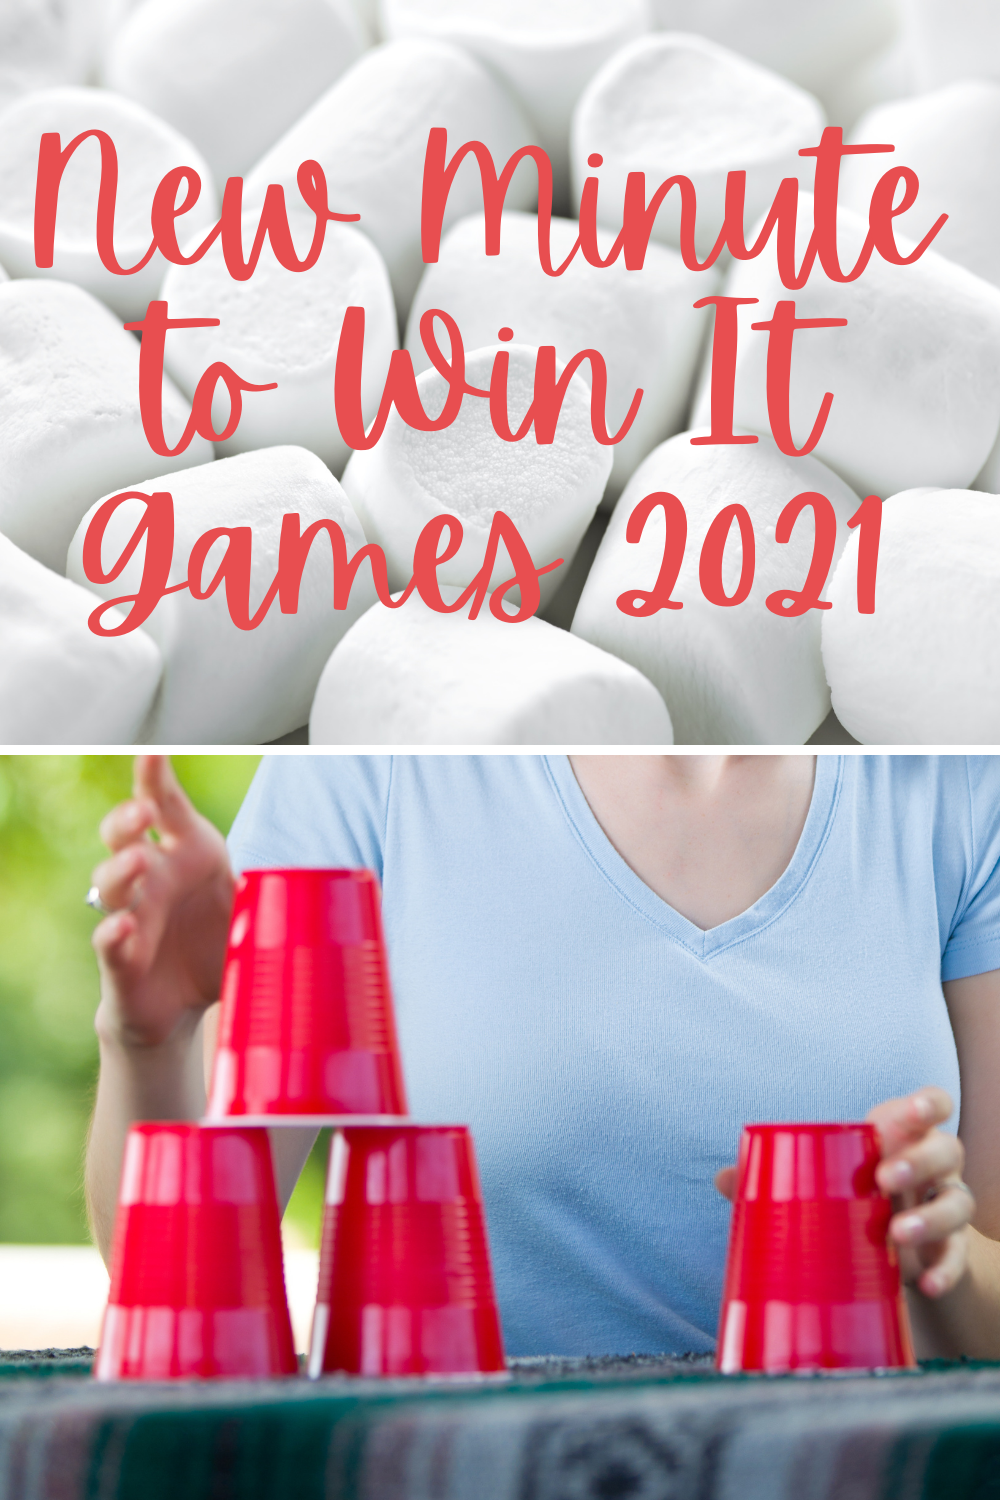 New Minute to Win It Games You Haven't Seen Before 2021